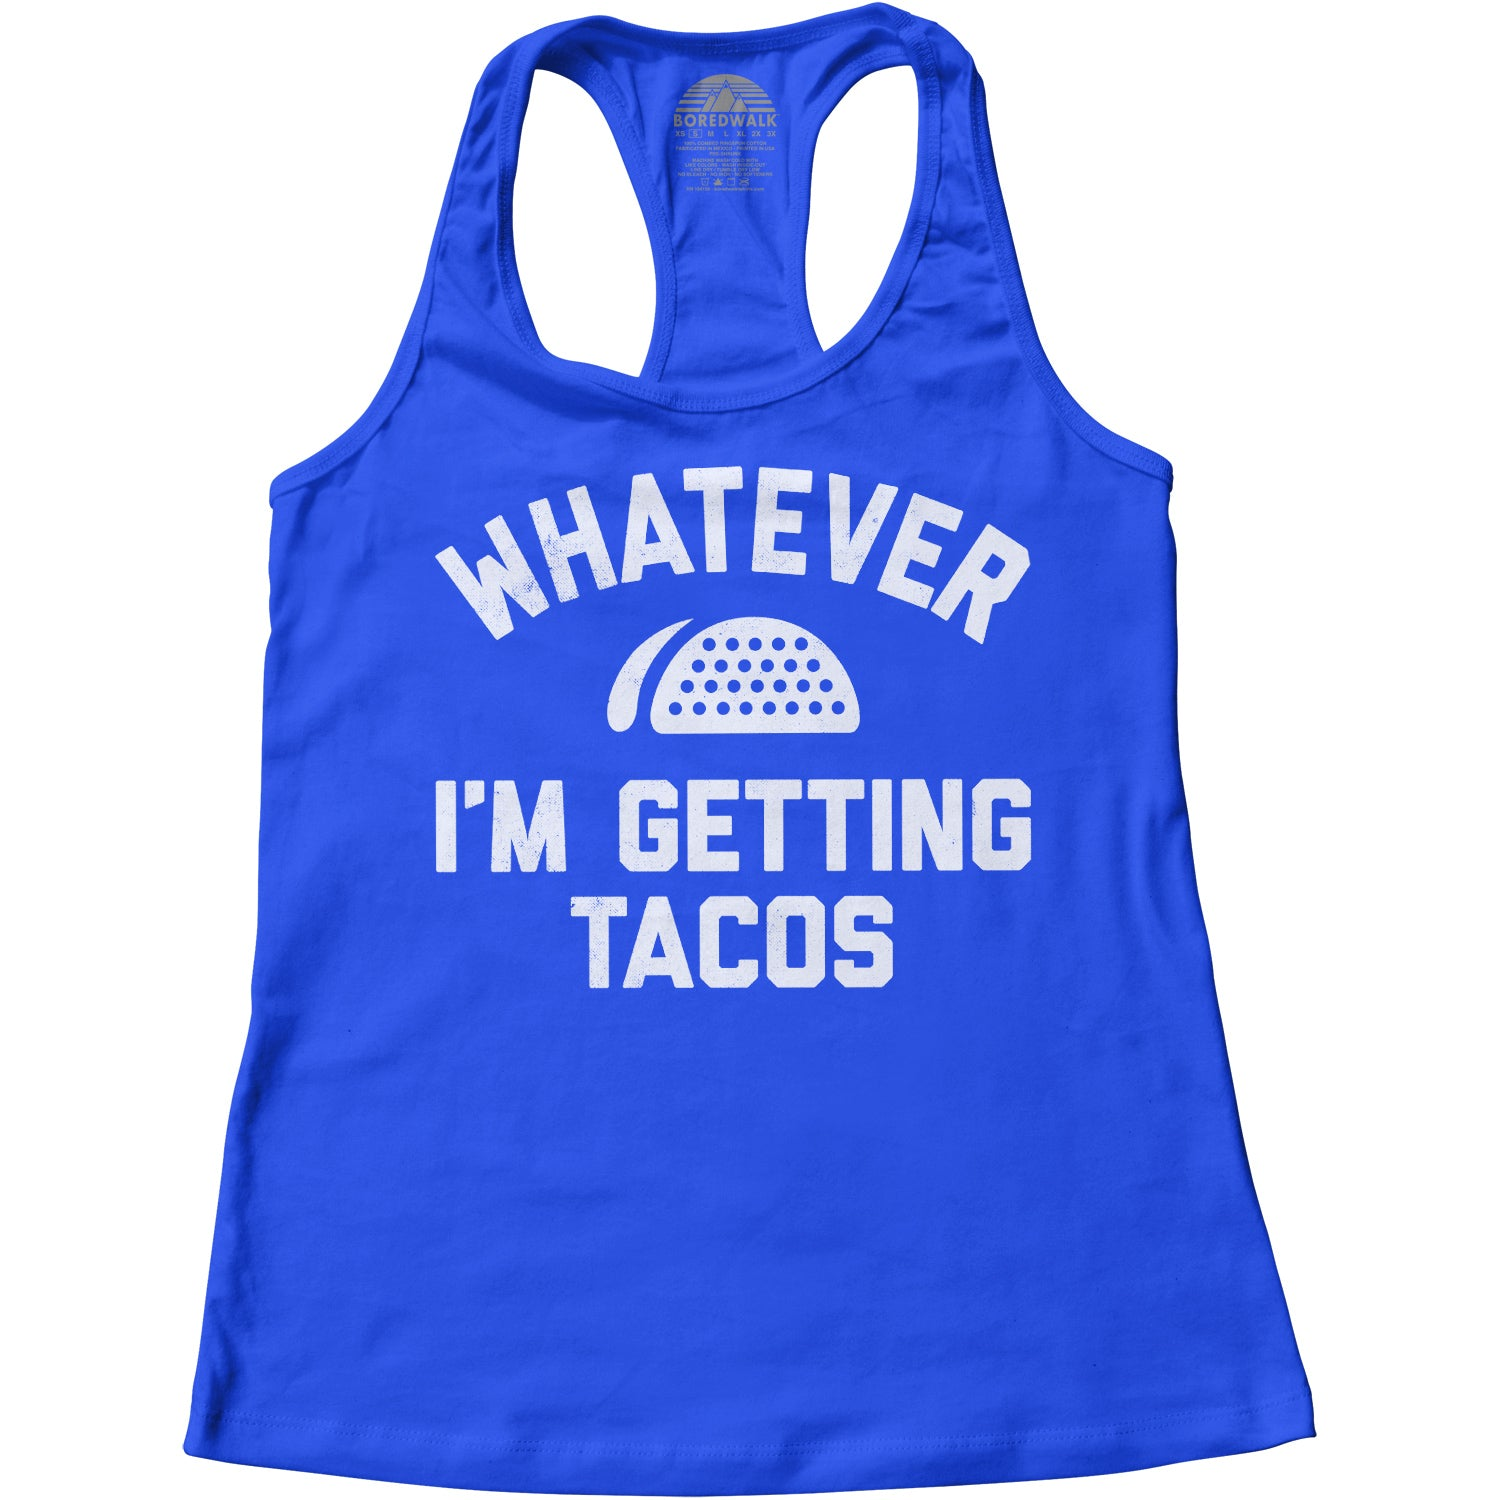 Women's Whatever I'm Getting Tacos Racerback Tank Top